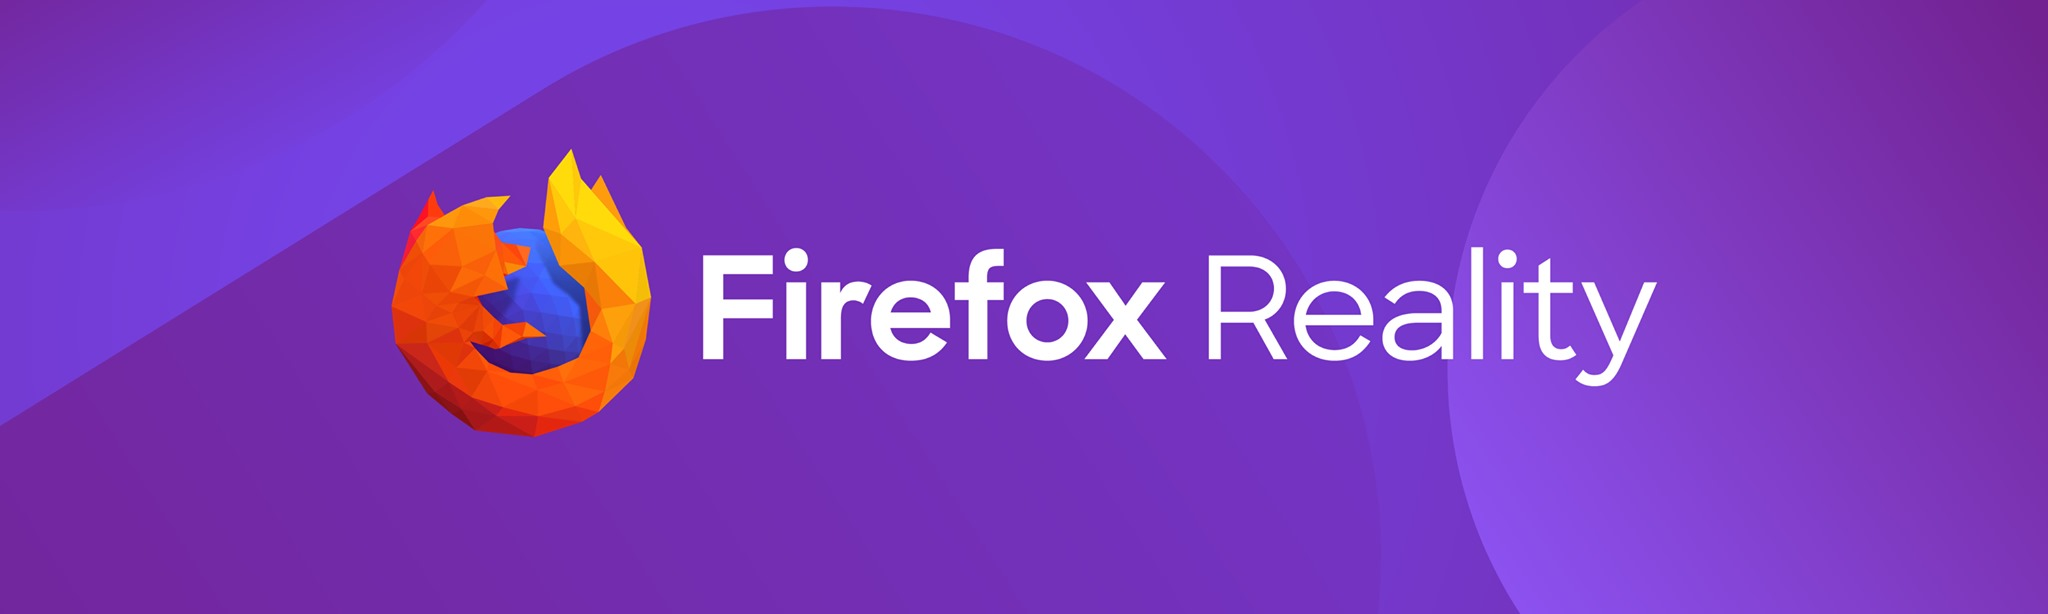 Nouvelles – Firefox Reality